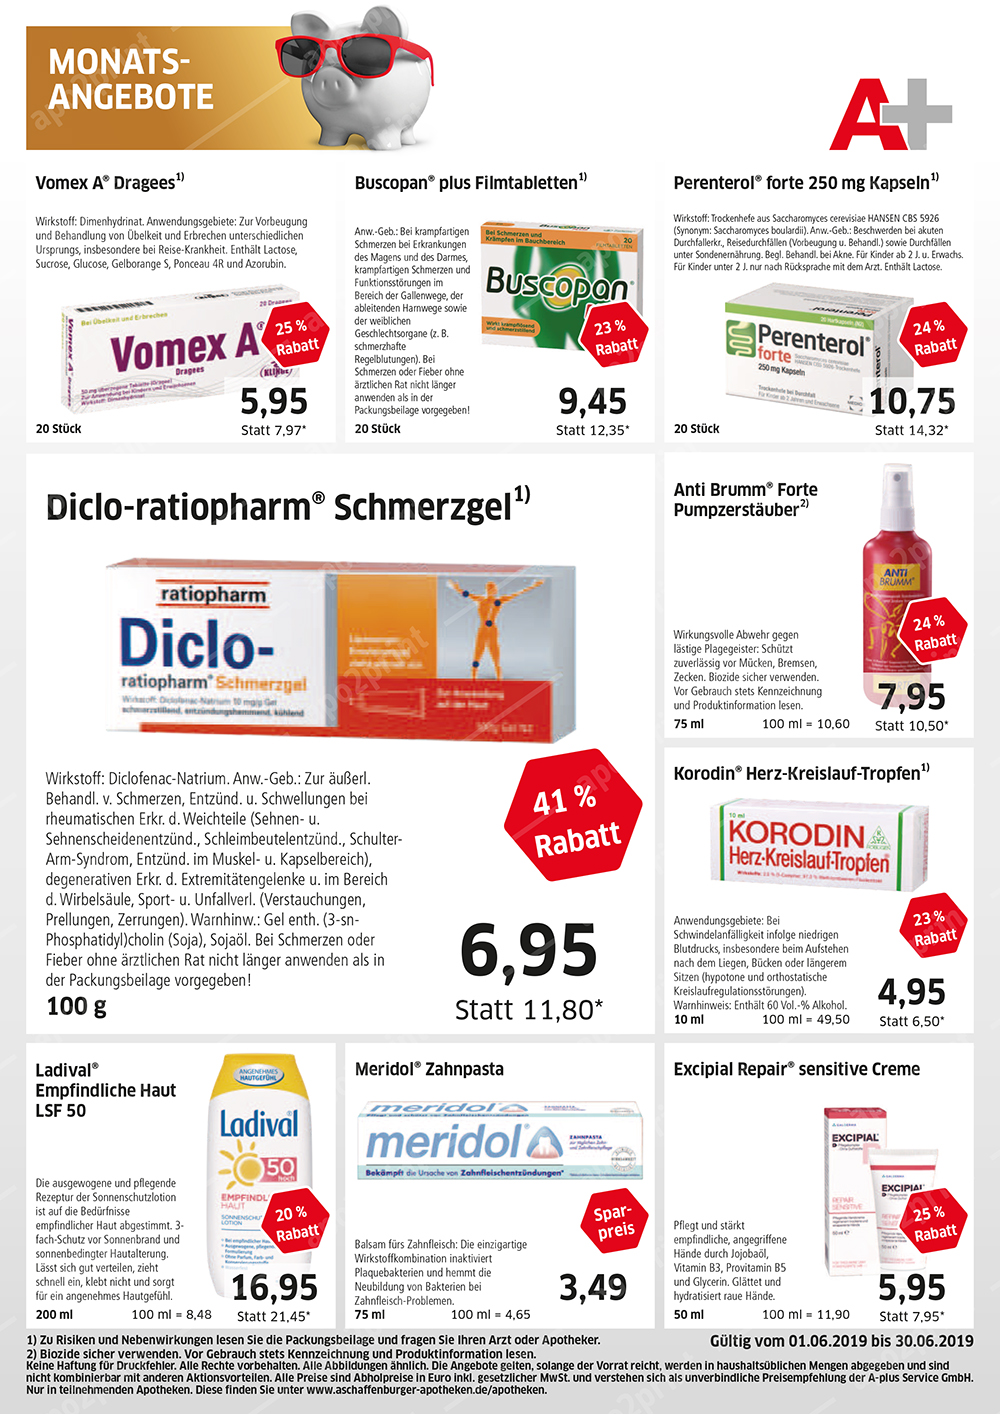 https://portal.apotheken.de/fileadmin/clubarea/00000-Angebote/63538_main_angebot_2.jpg